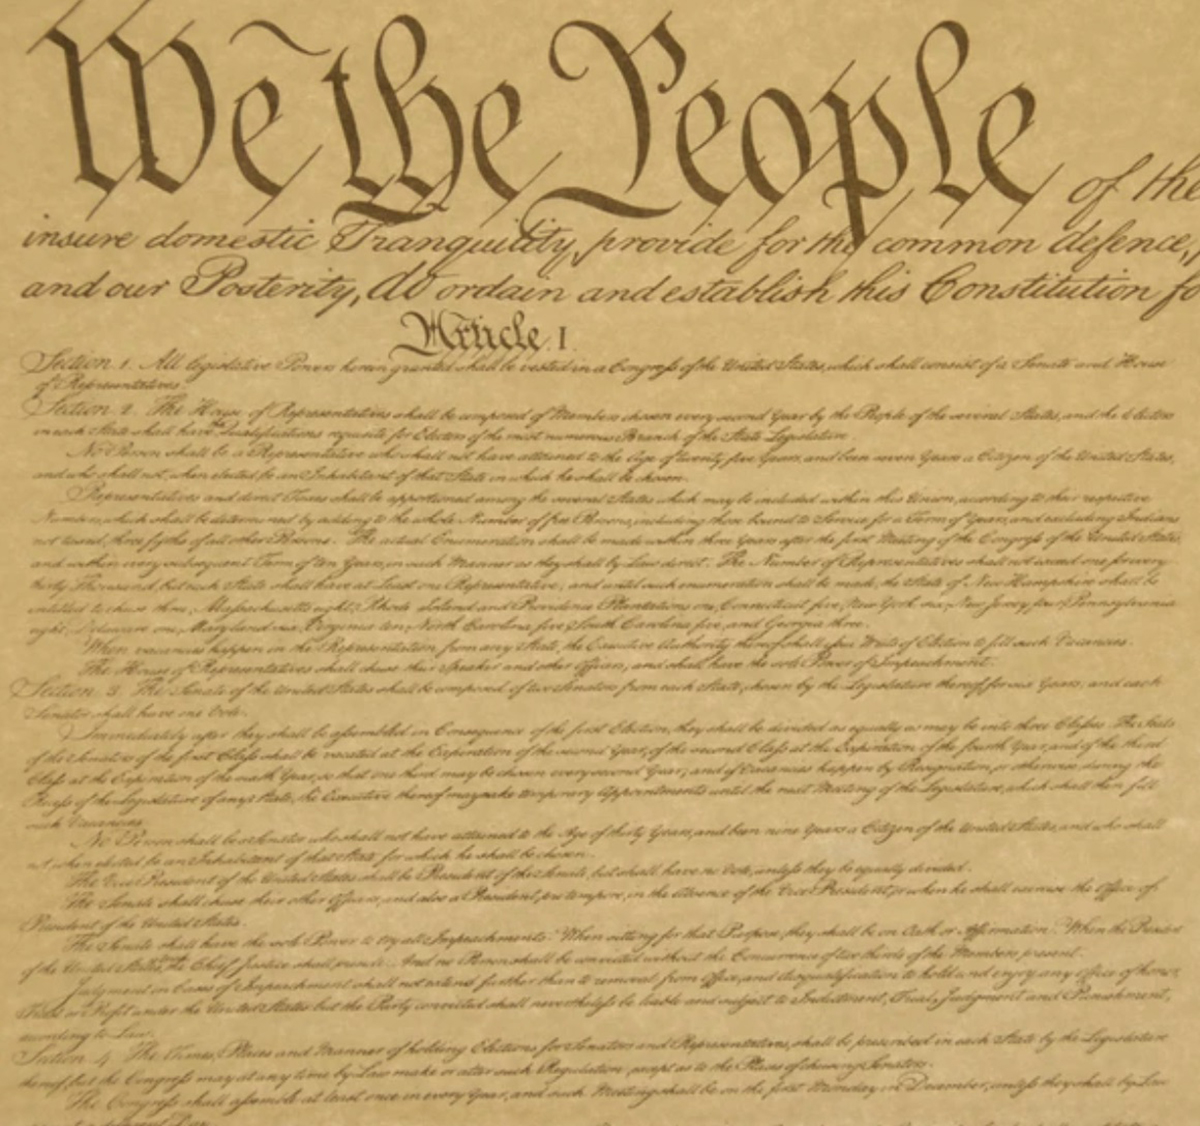 The beginning of the US Constitution